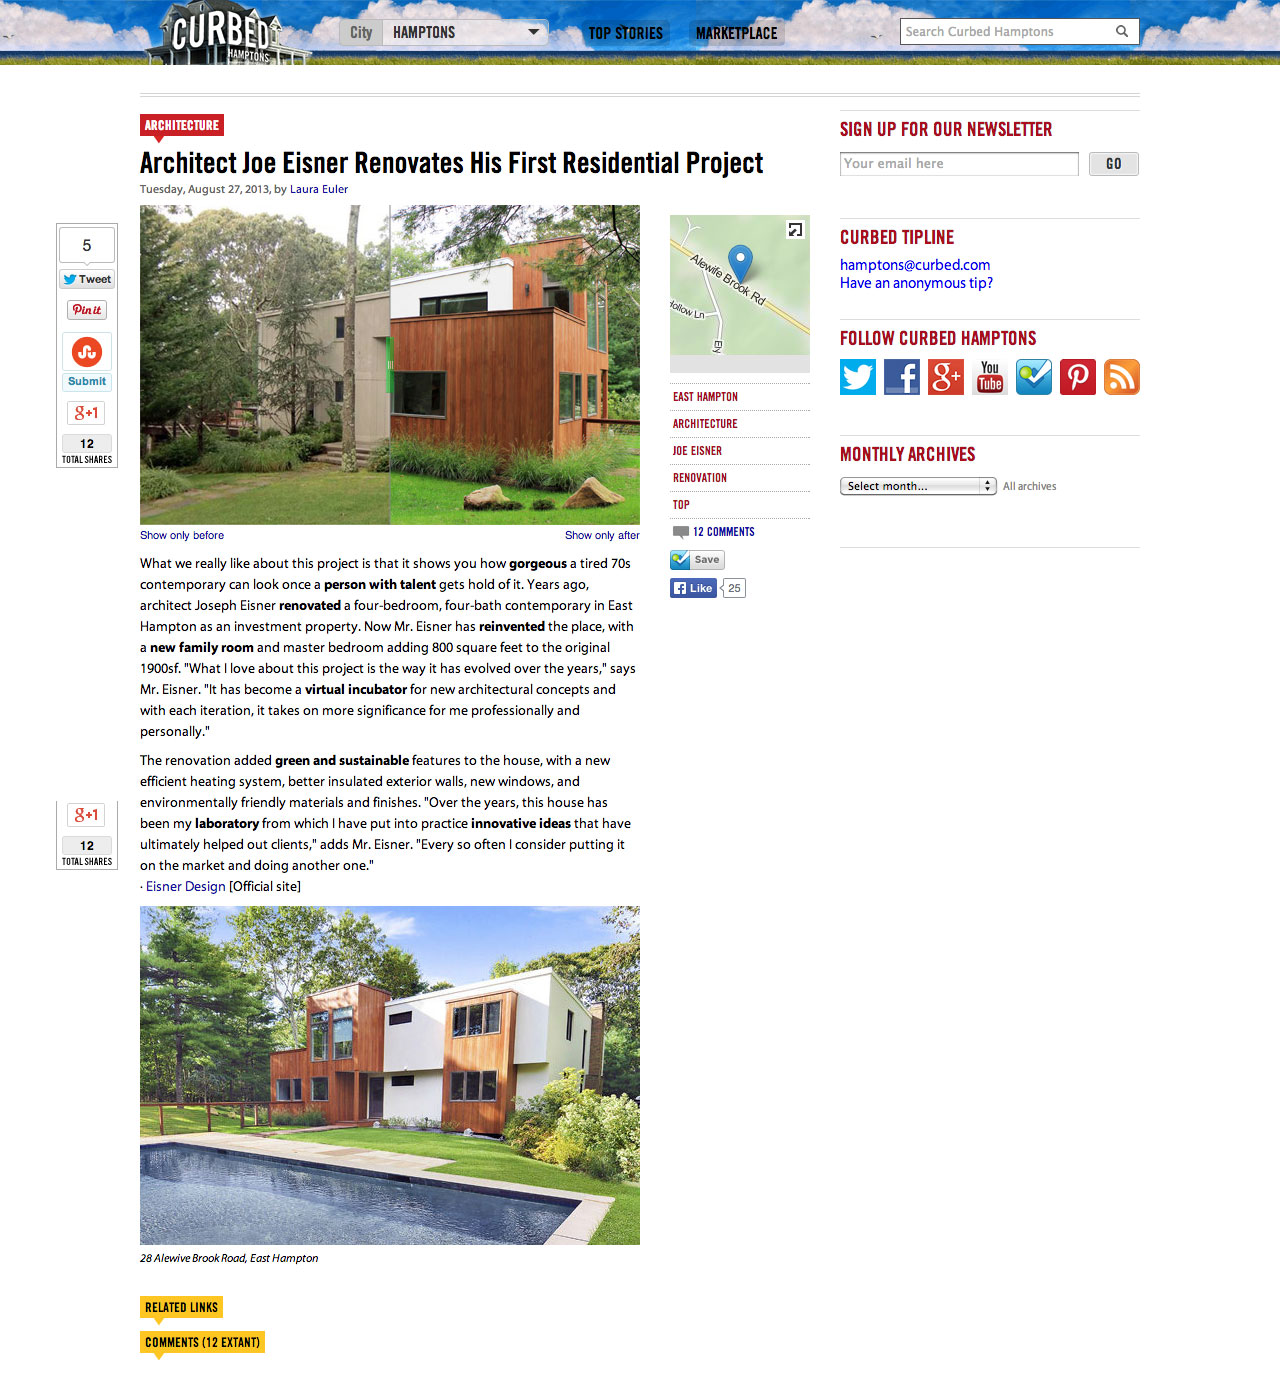 12_News_Curbed-Alewive-East-Hamptions-NY_web_w1280